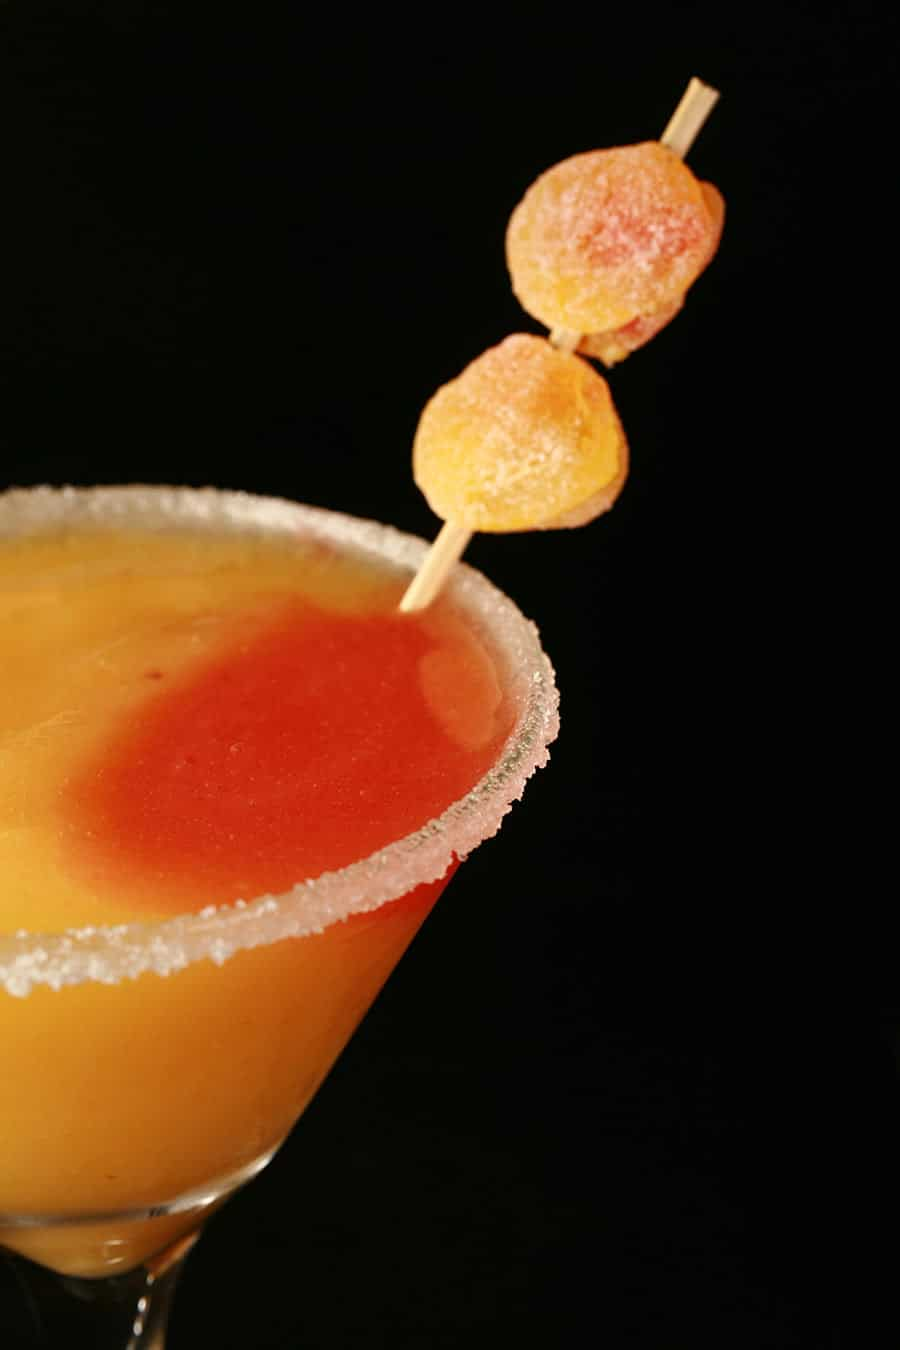 Close up image of a martini glass. It has a sugar rim, and orange and red coloured slush within. It is garnished with 2 peach shaped candies